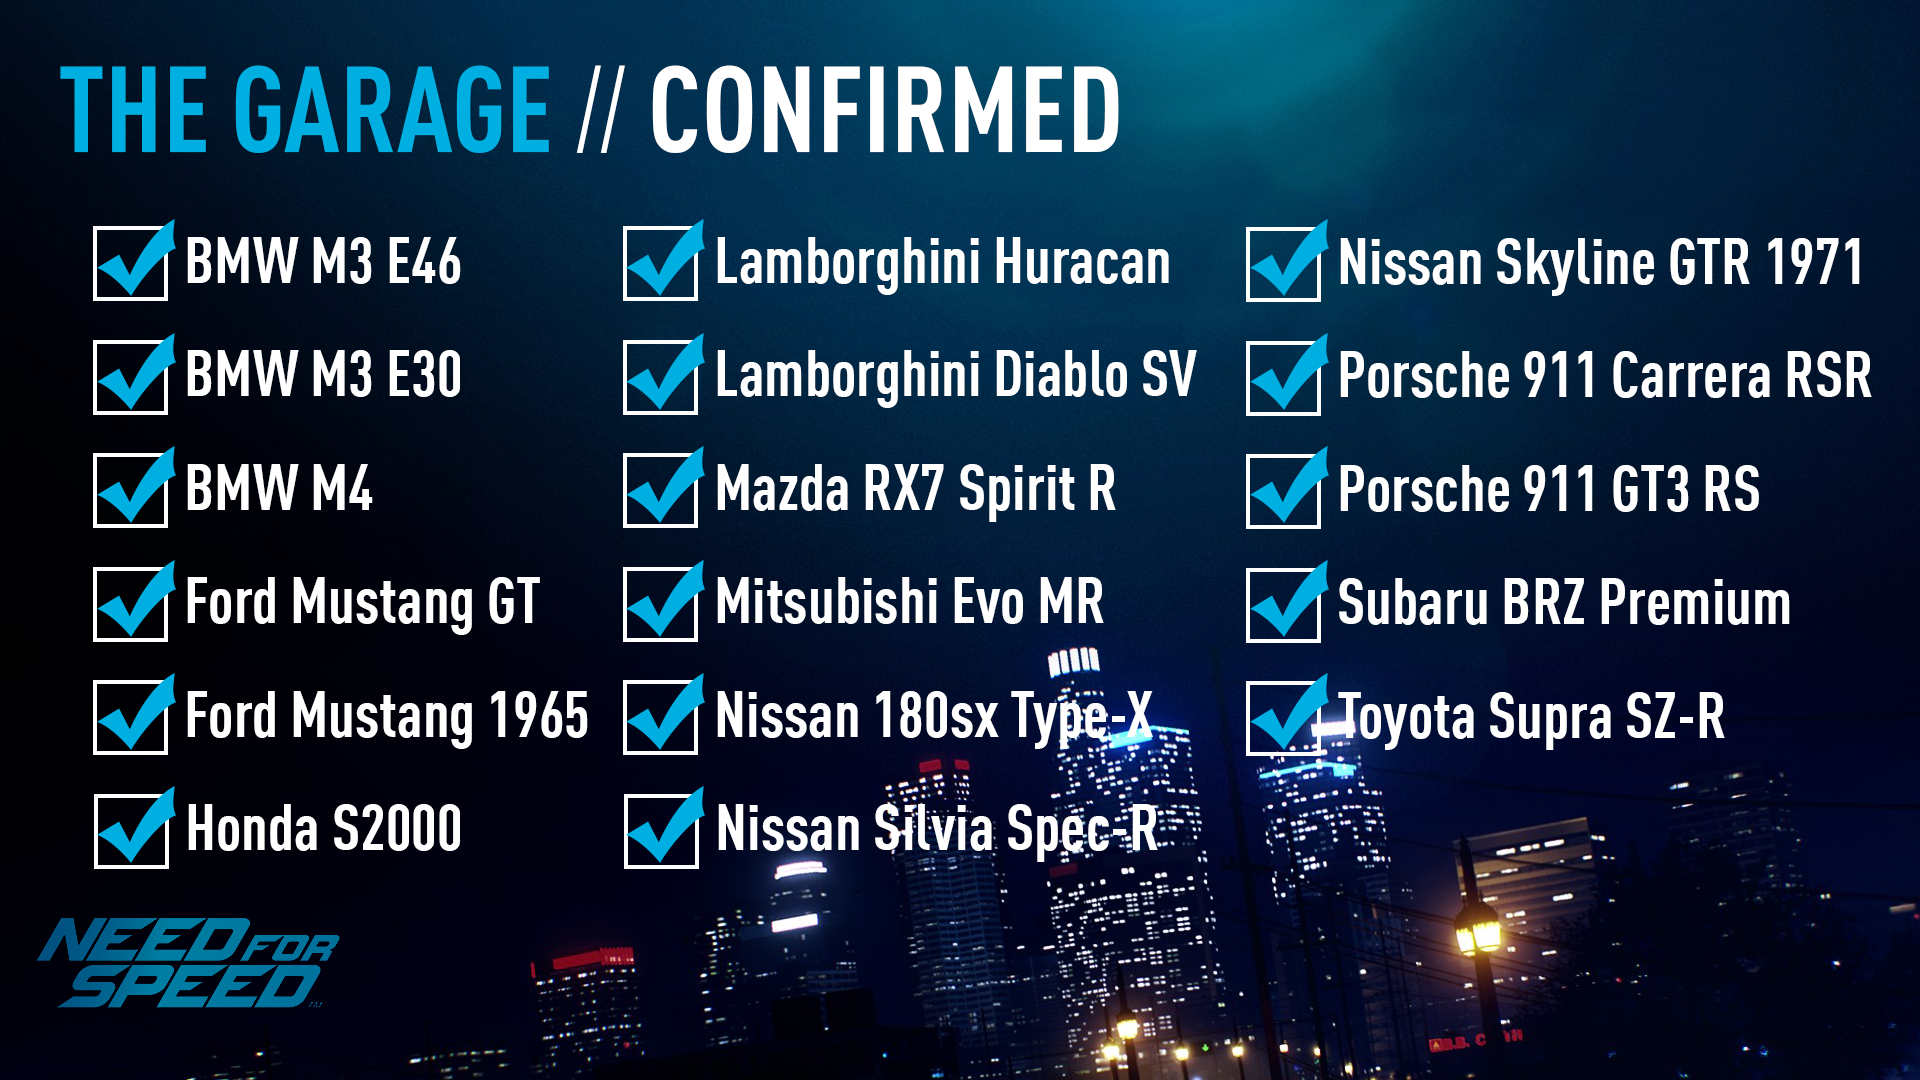 NFS2015 confirmed cars.png